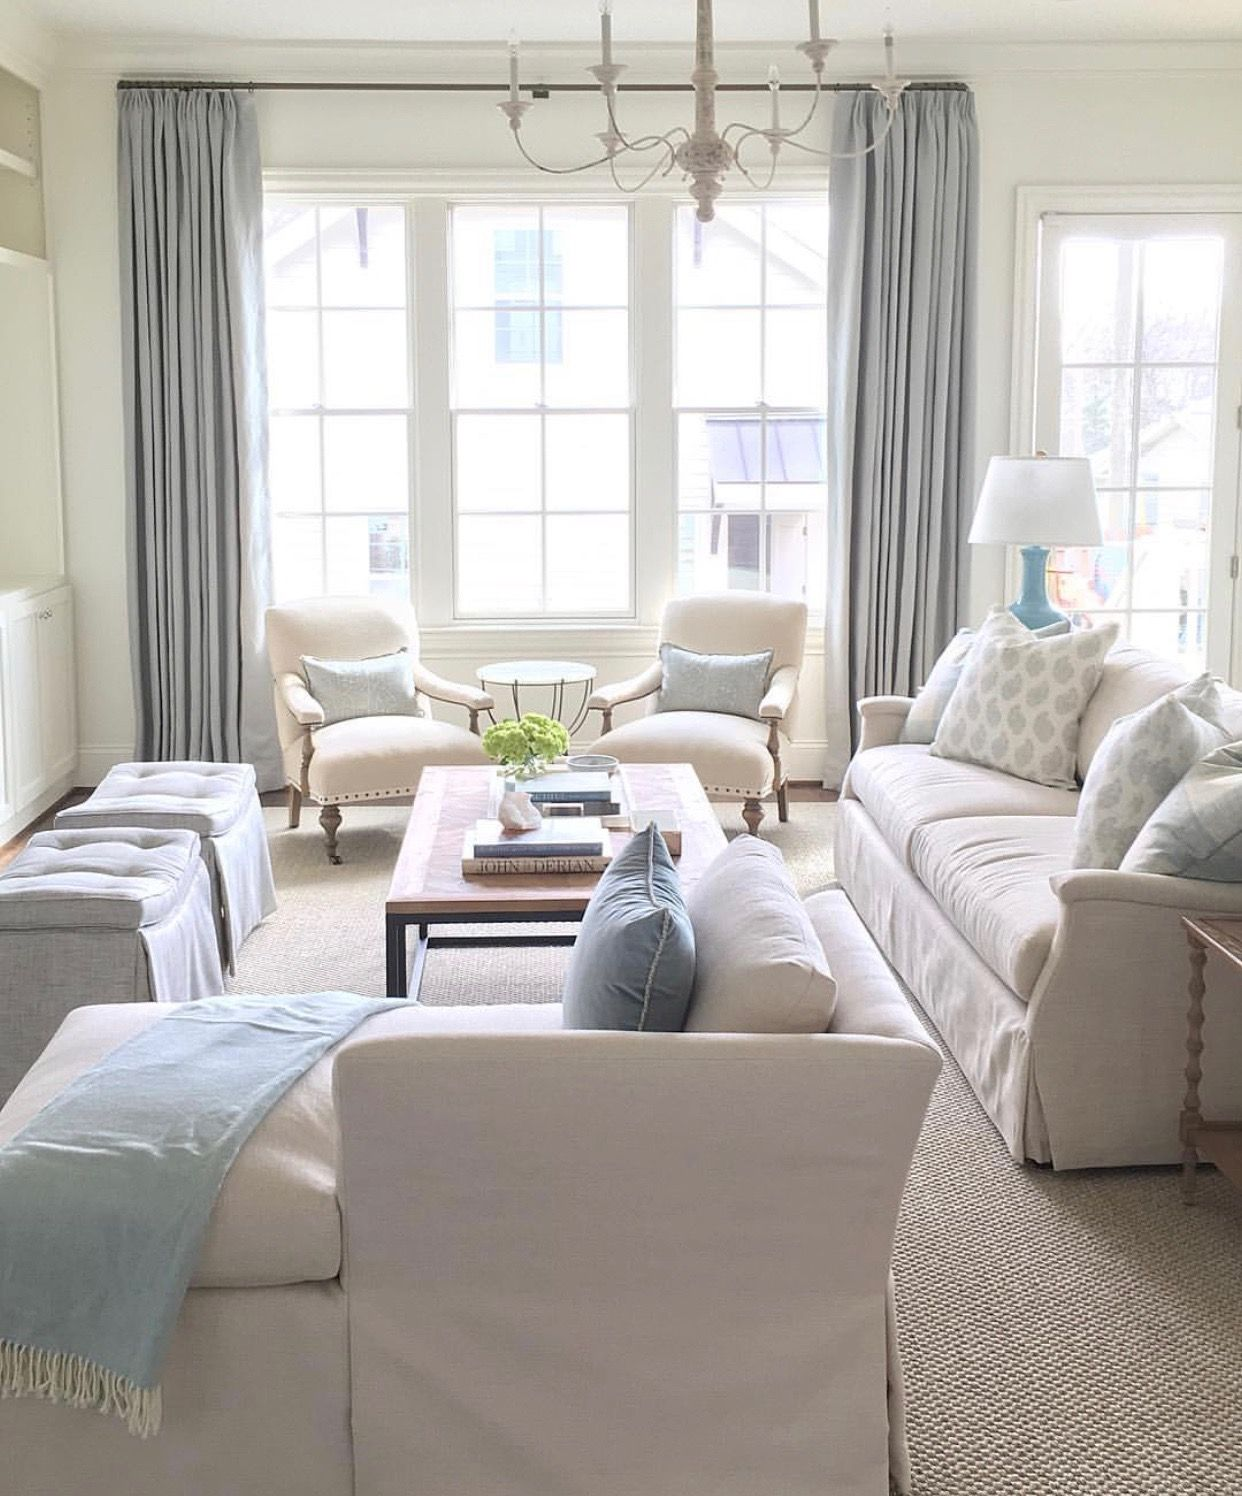 Neutral Space With Light Blue Pillows Throw Lamp And Drapes